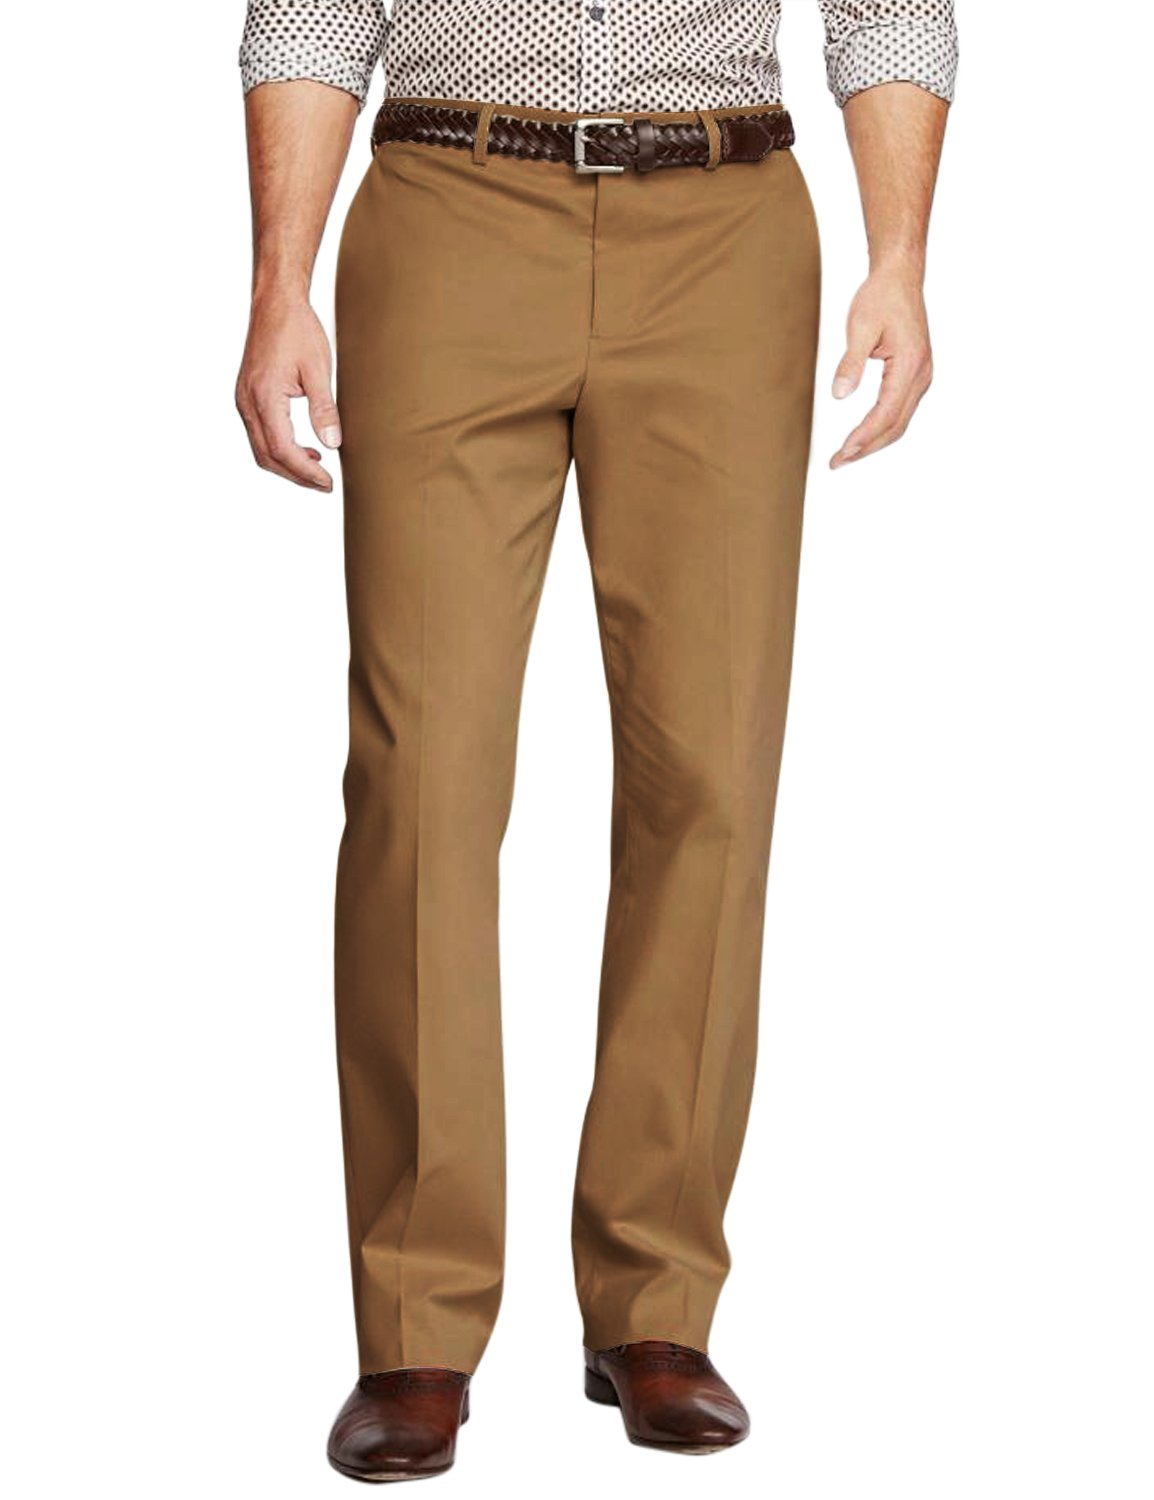 Match Men's Straight-Fit Casual Pants M3(32W x 31L, 8130 Khaki) by Match